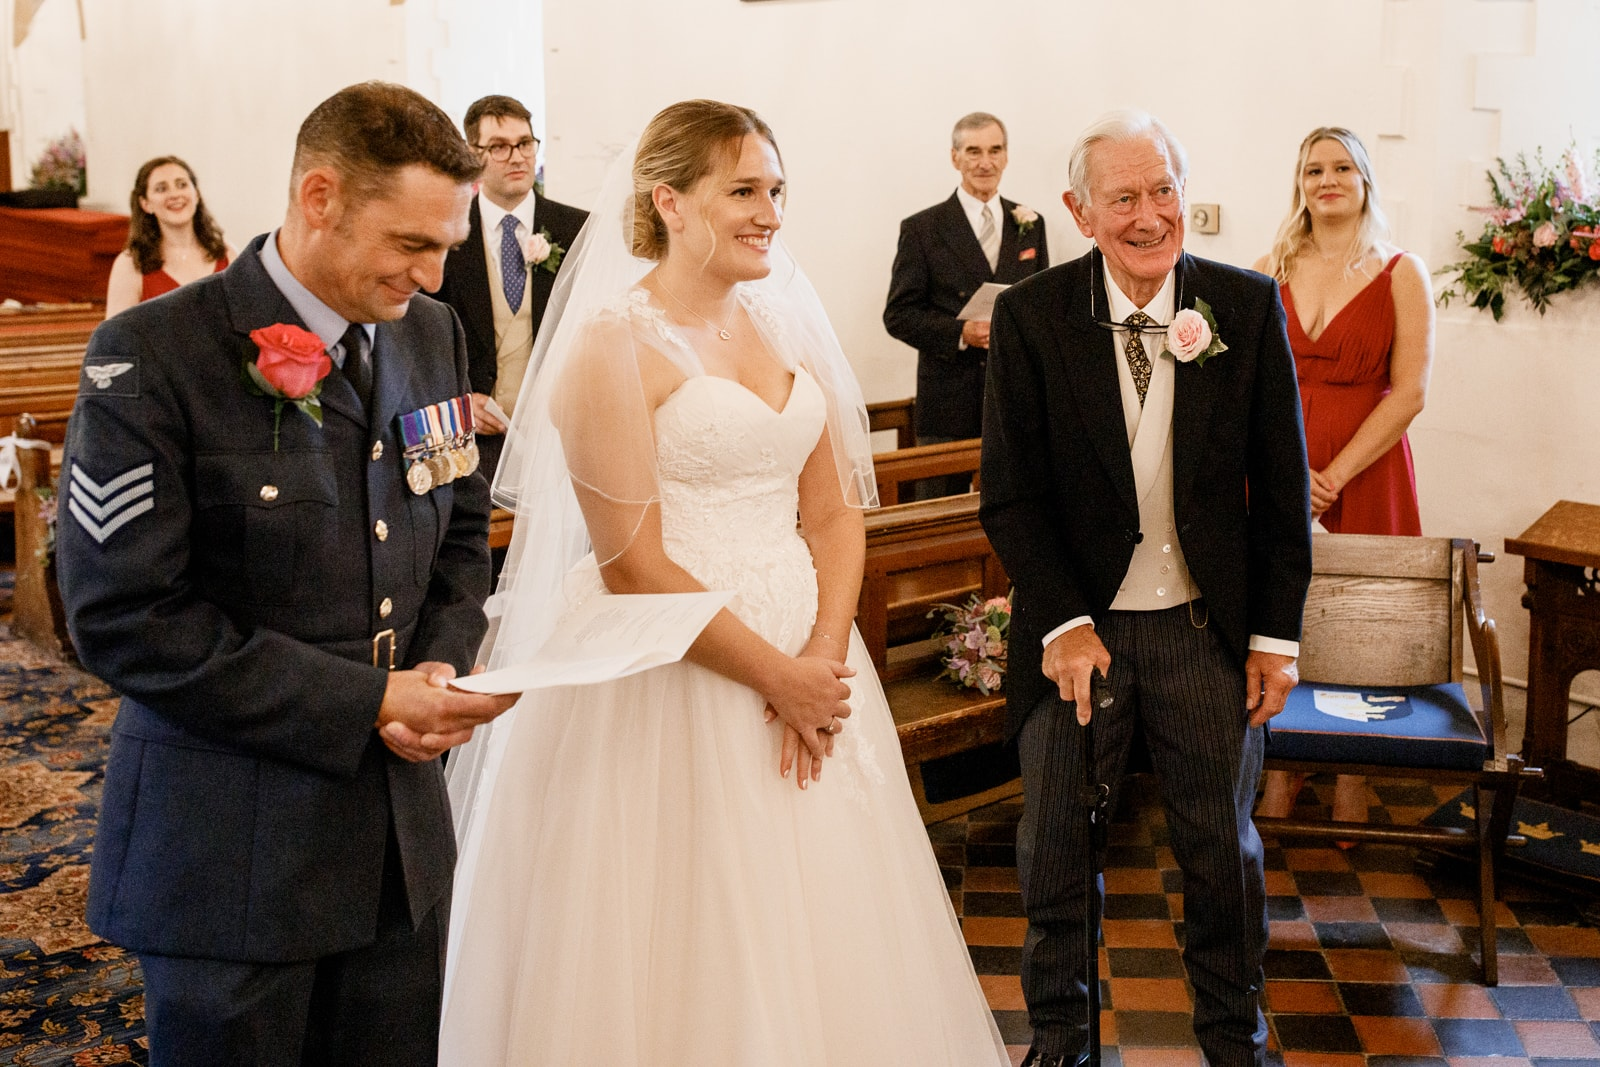 bride and groom at altar in church with father looking on